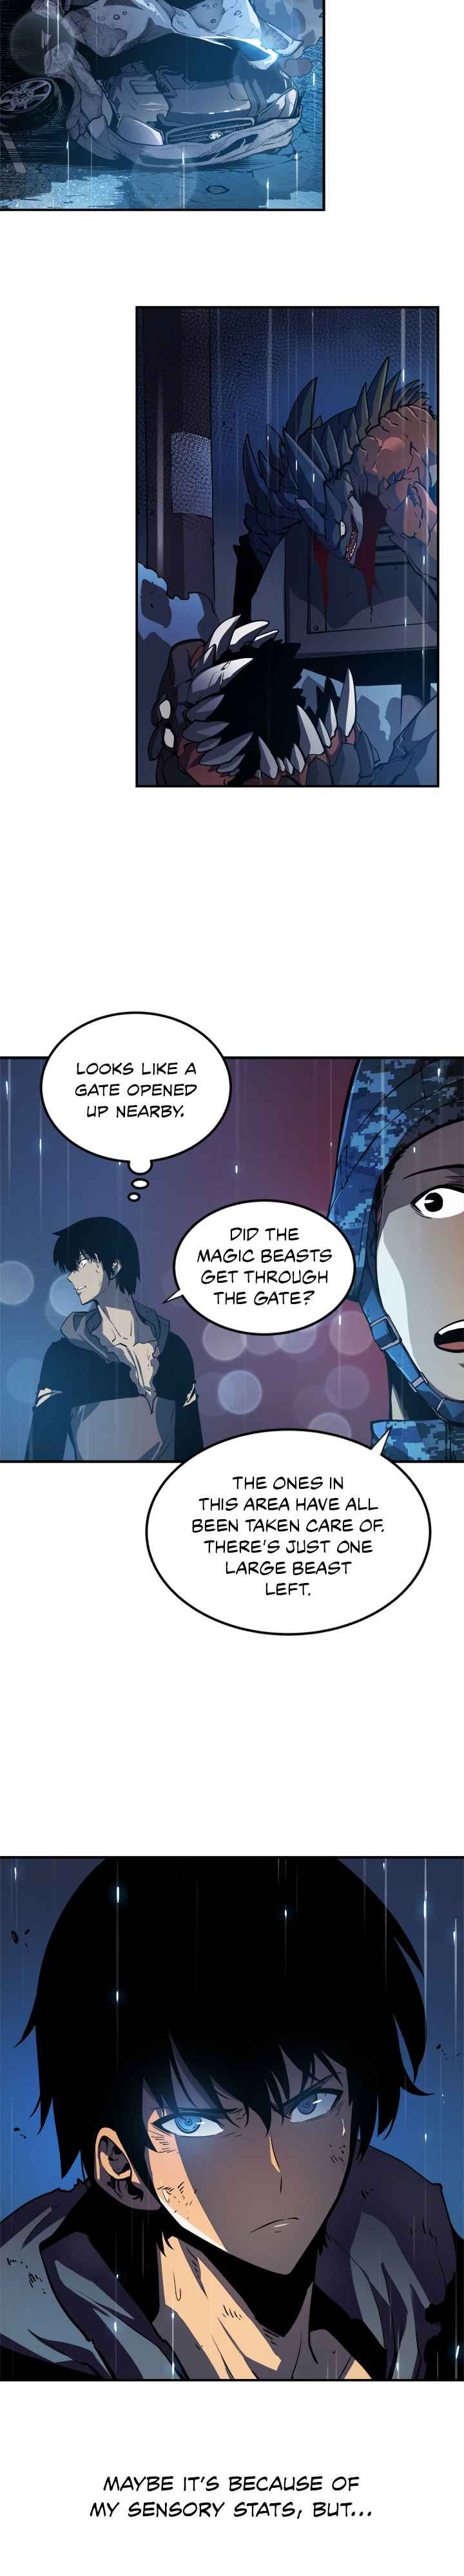 Solo Leveling Chapter 17 Page 11